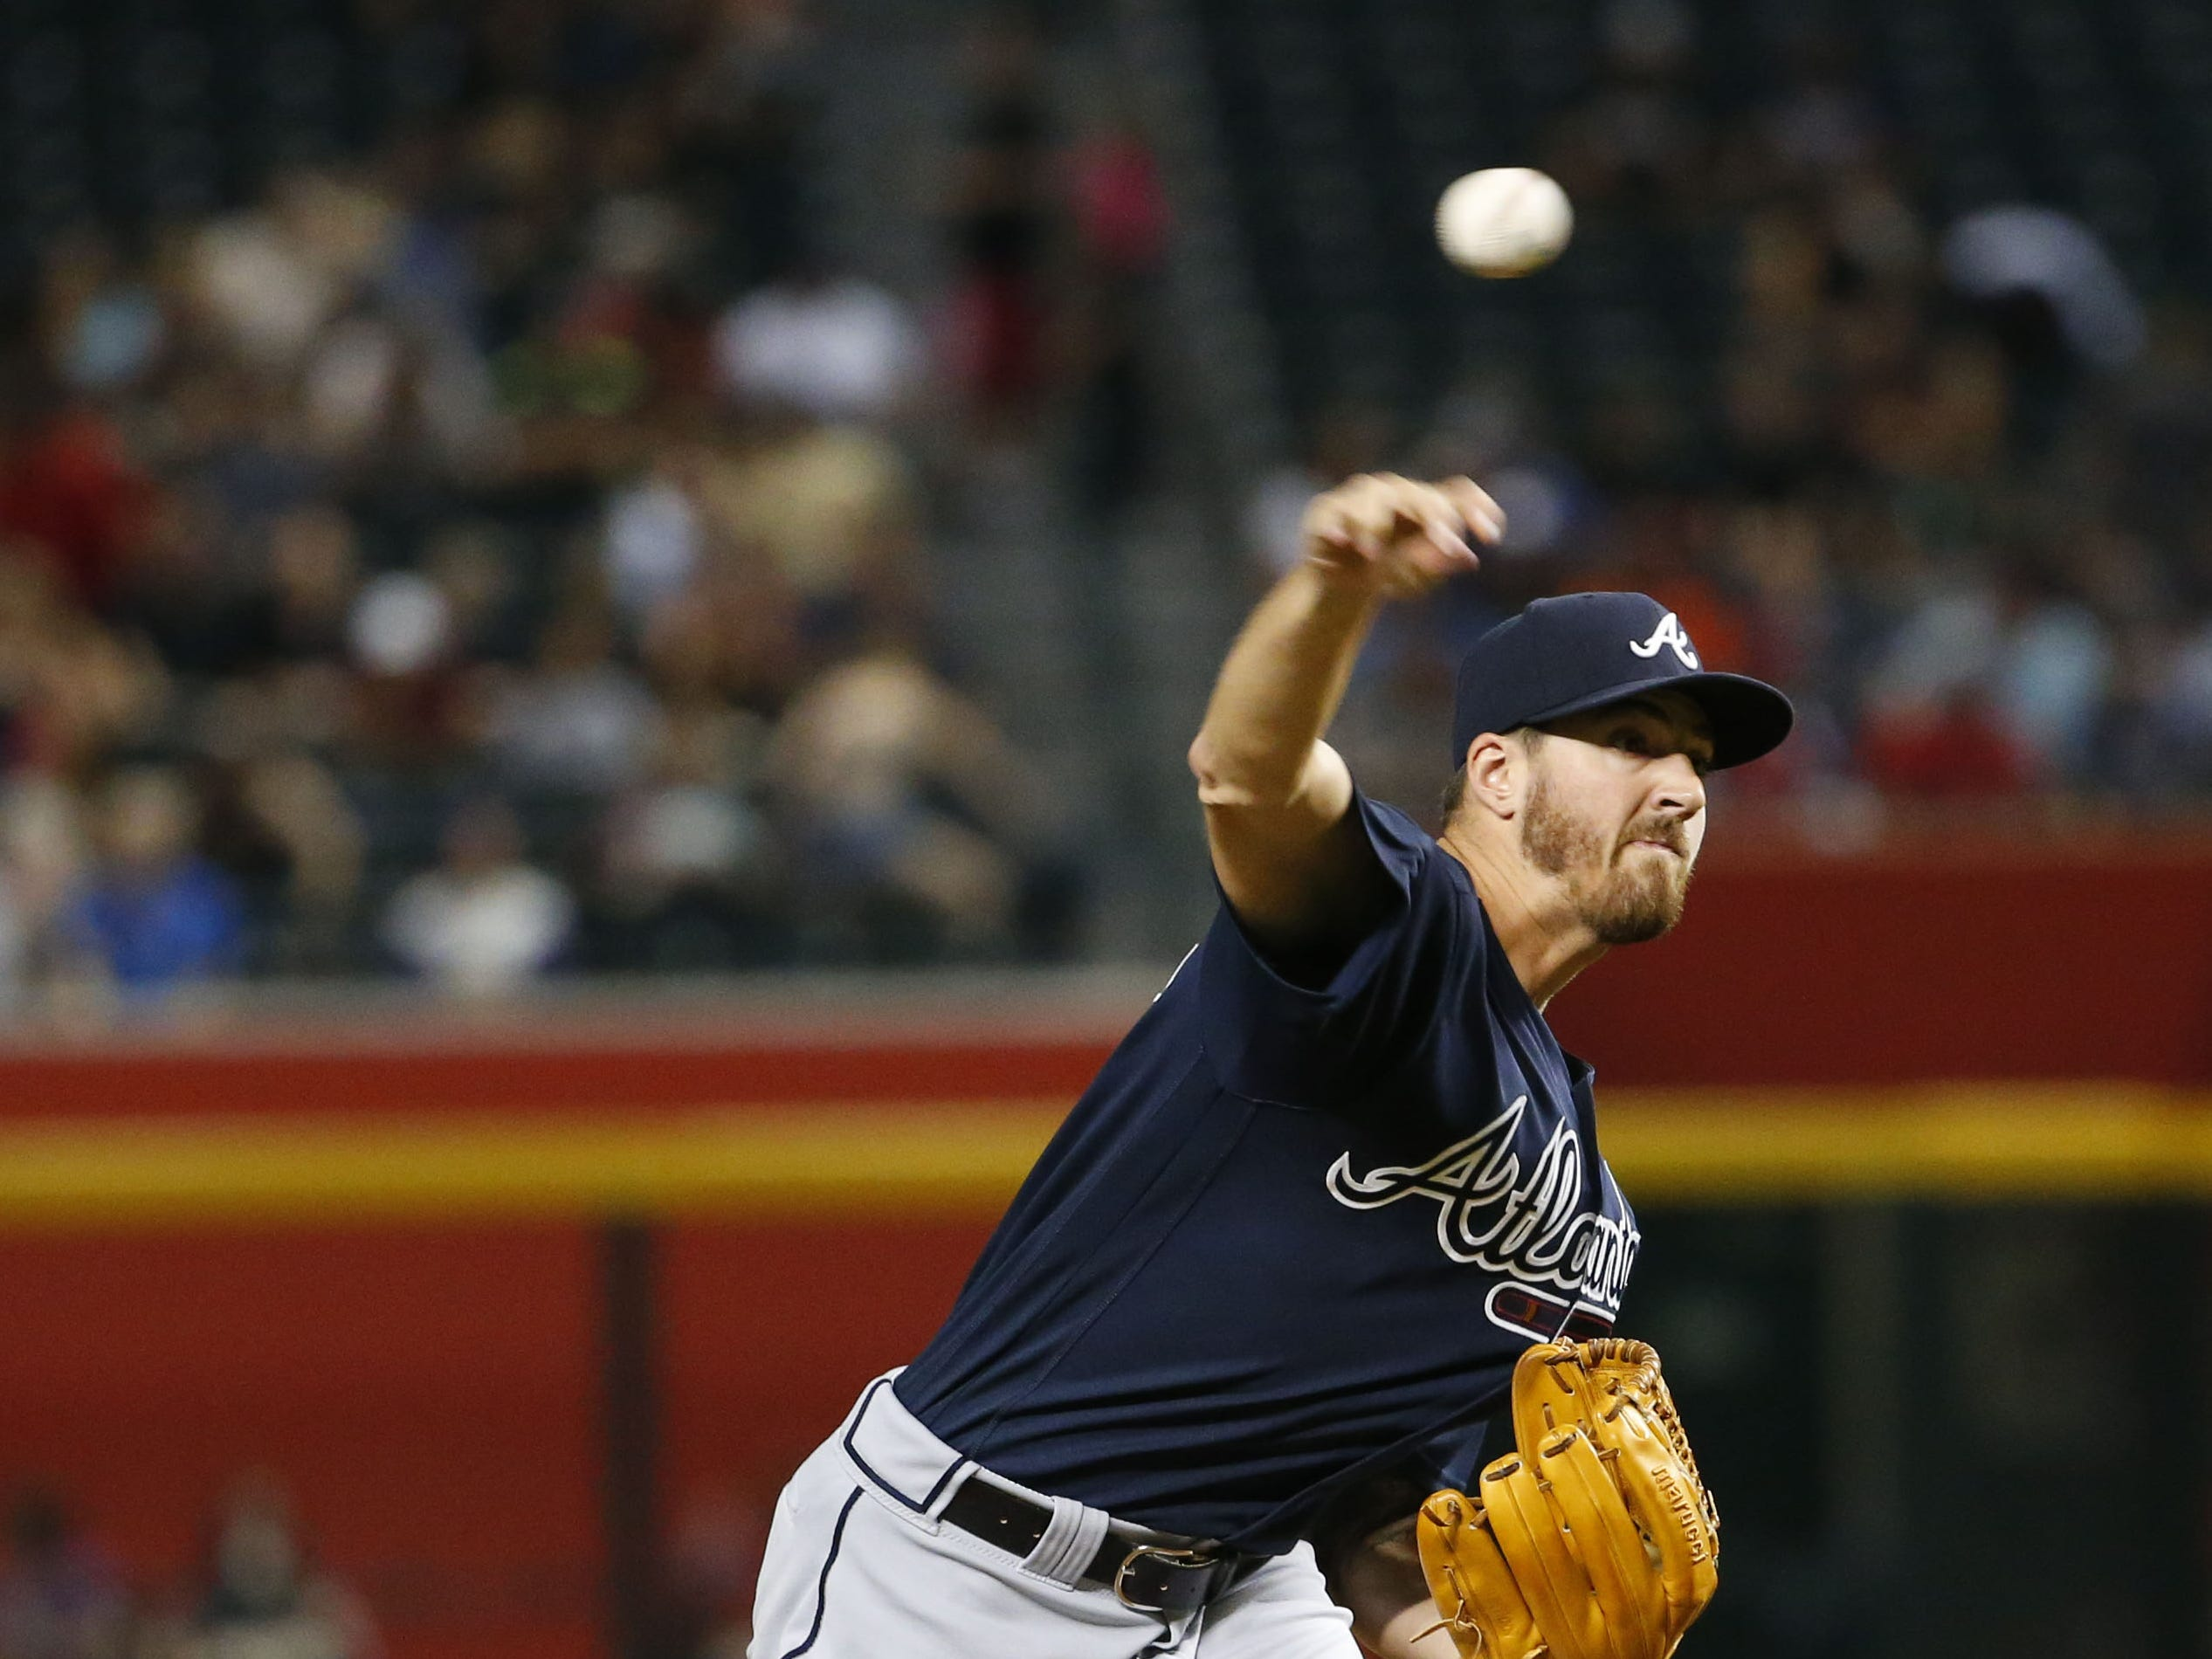 Atlanta Braves starting pitcher Kevin Gausman (45) throws during a MLB game against Arizona Diamondbacks at Chase Field in Phoenix on September 7, 2018.